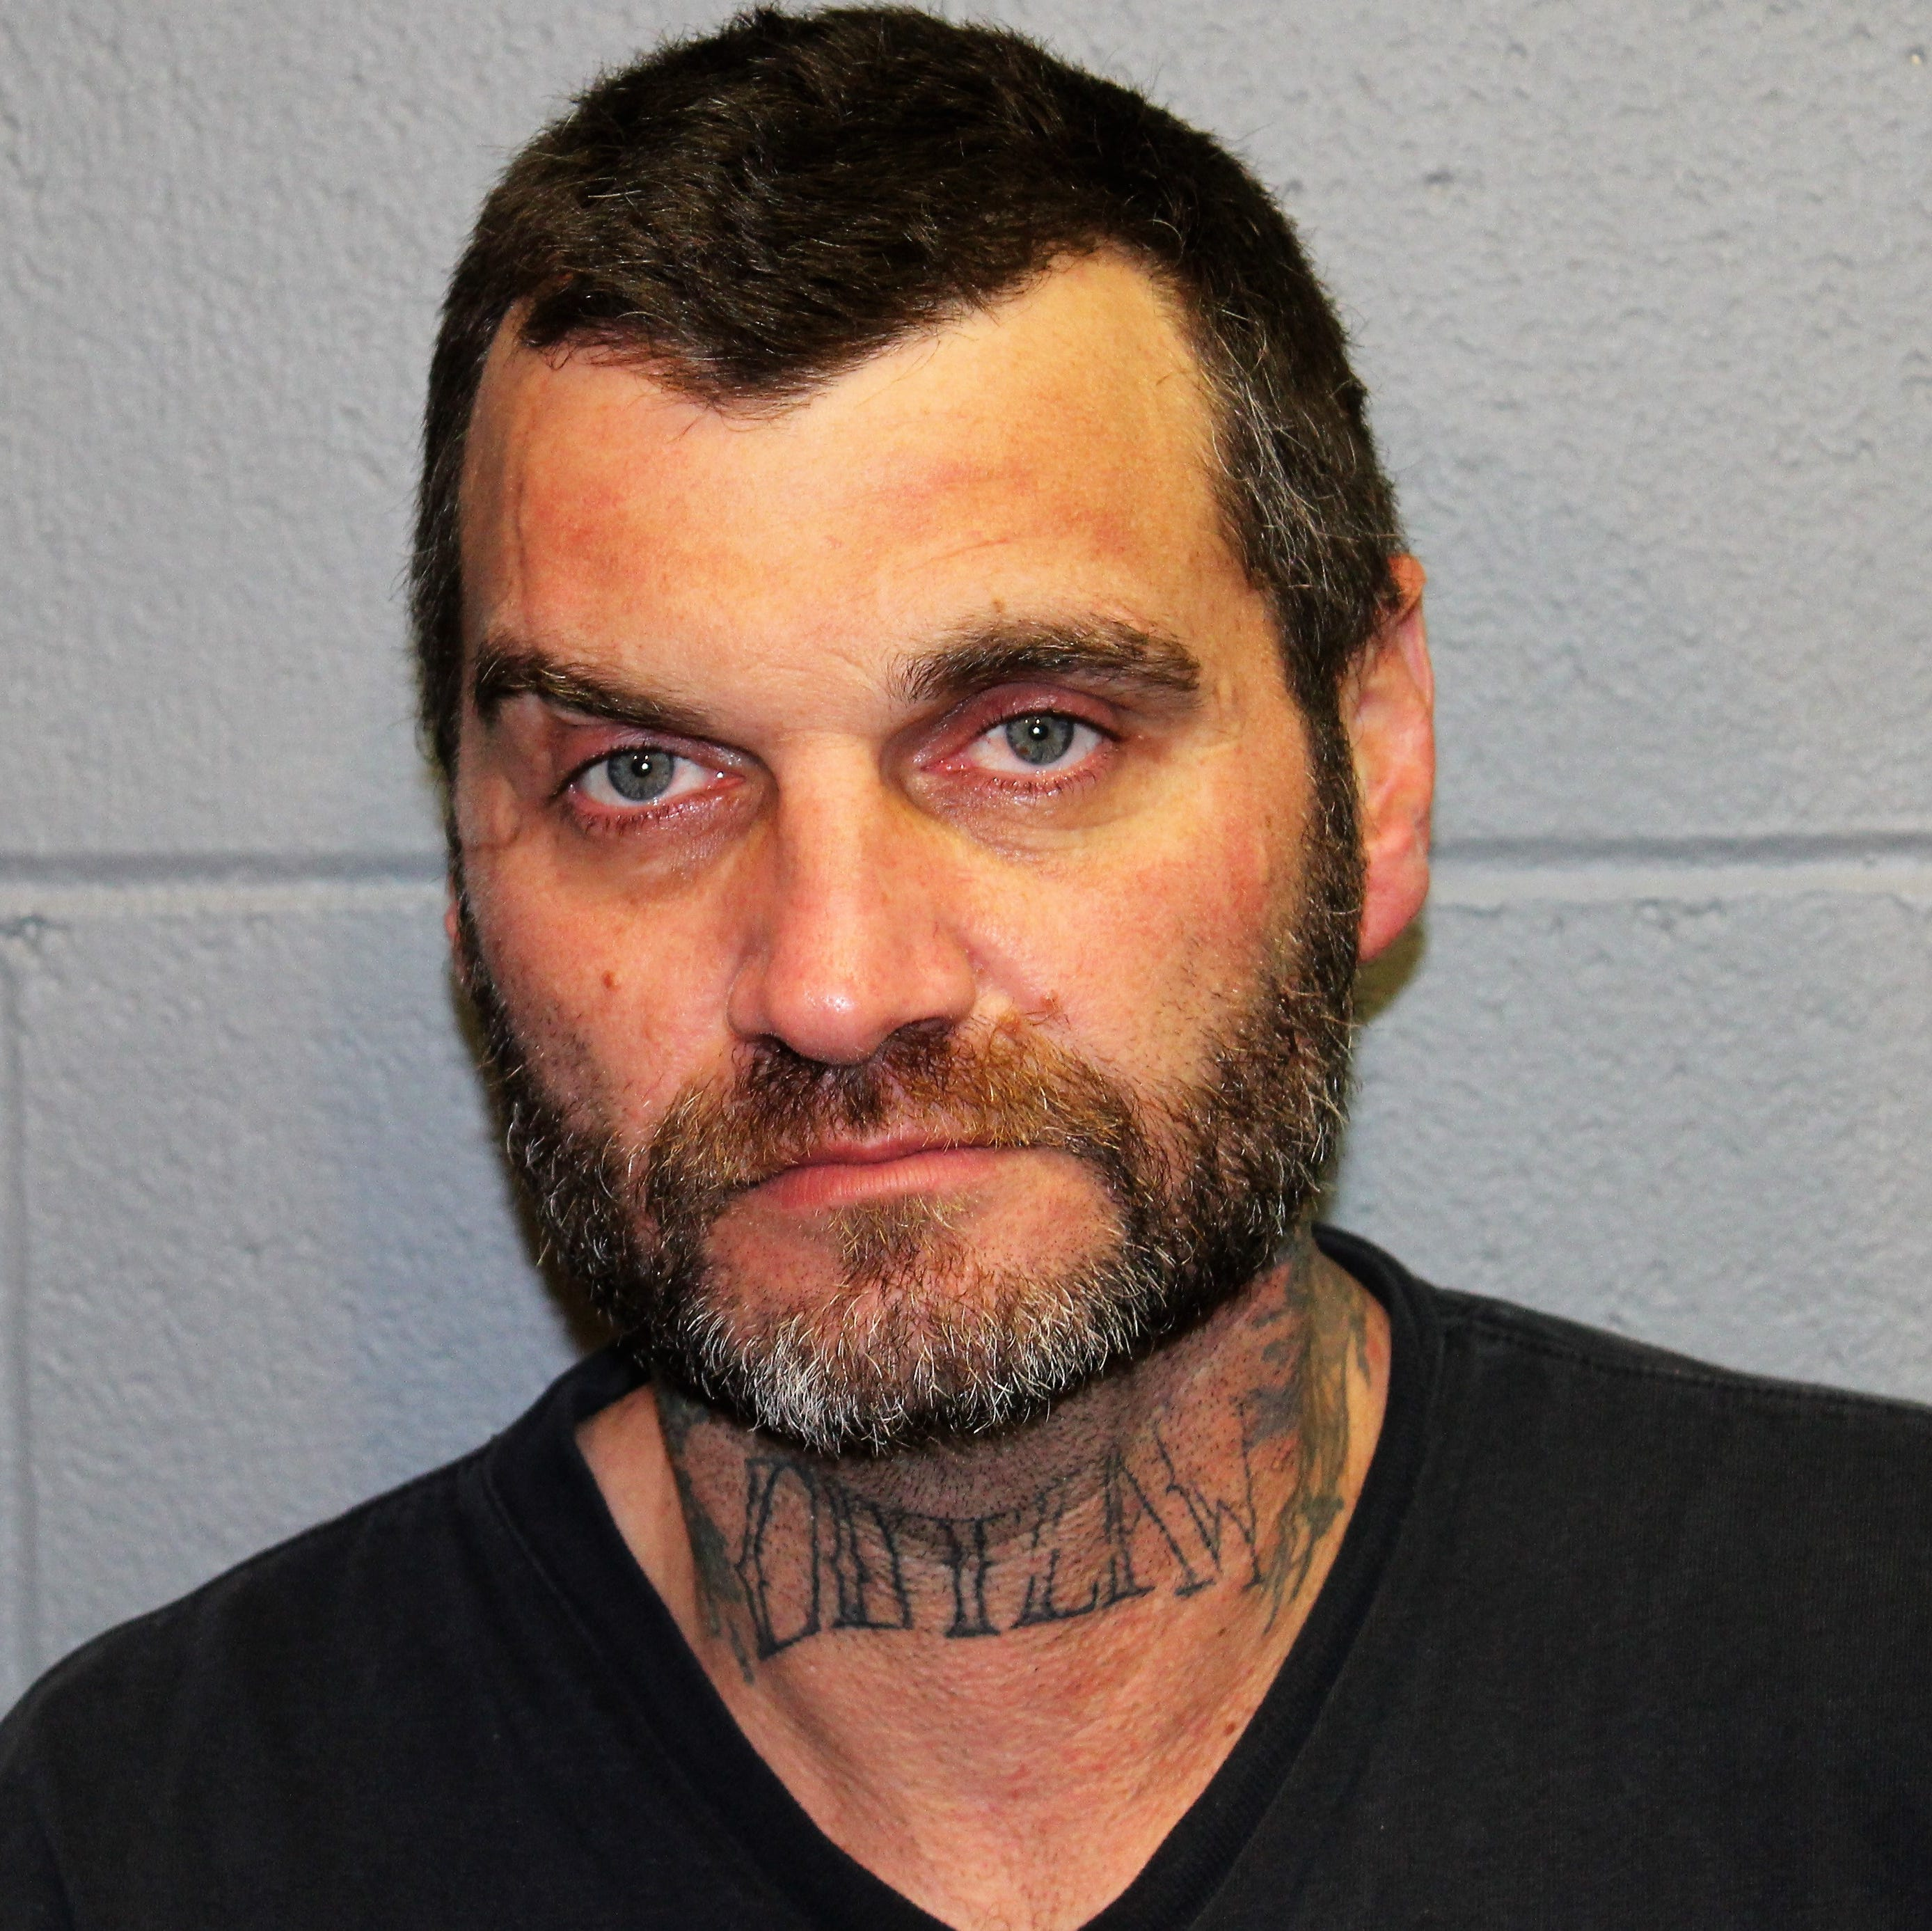 Kimbolton man accused of stealing motorcycle, firearm